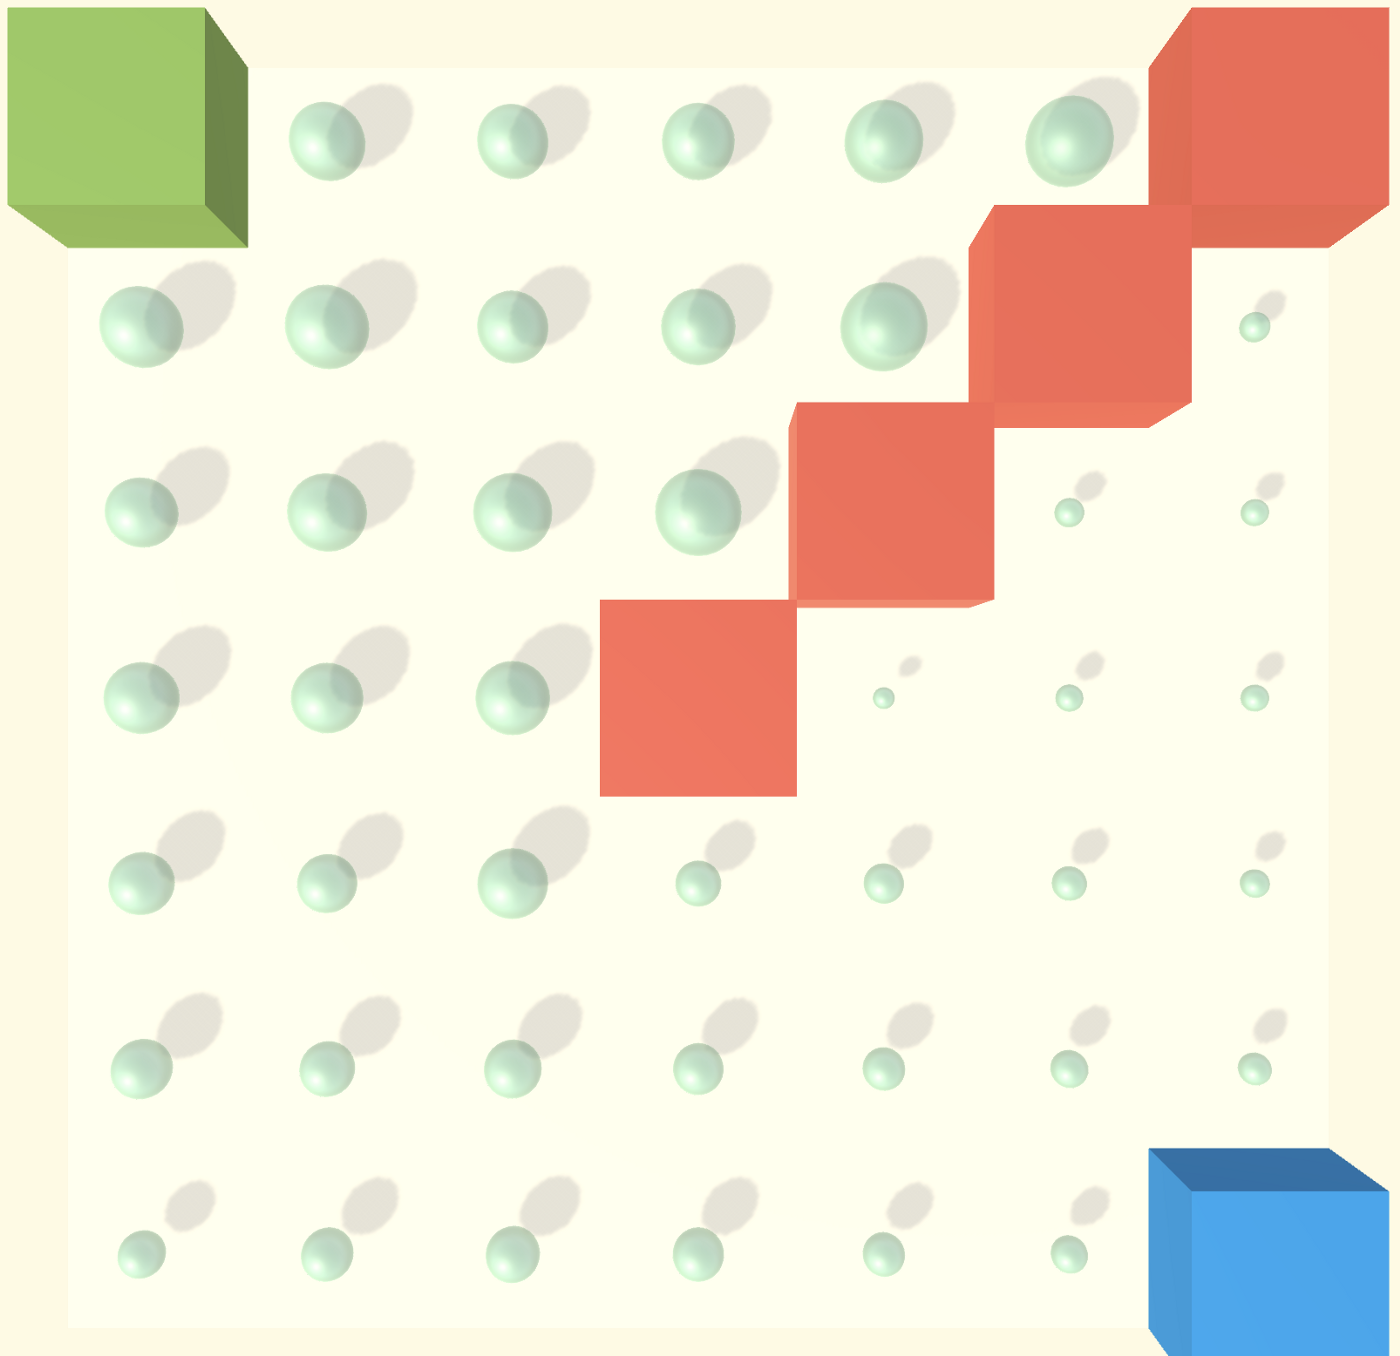 A2c Reinforcement Learning Paper